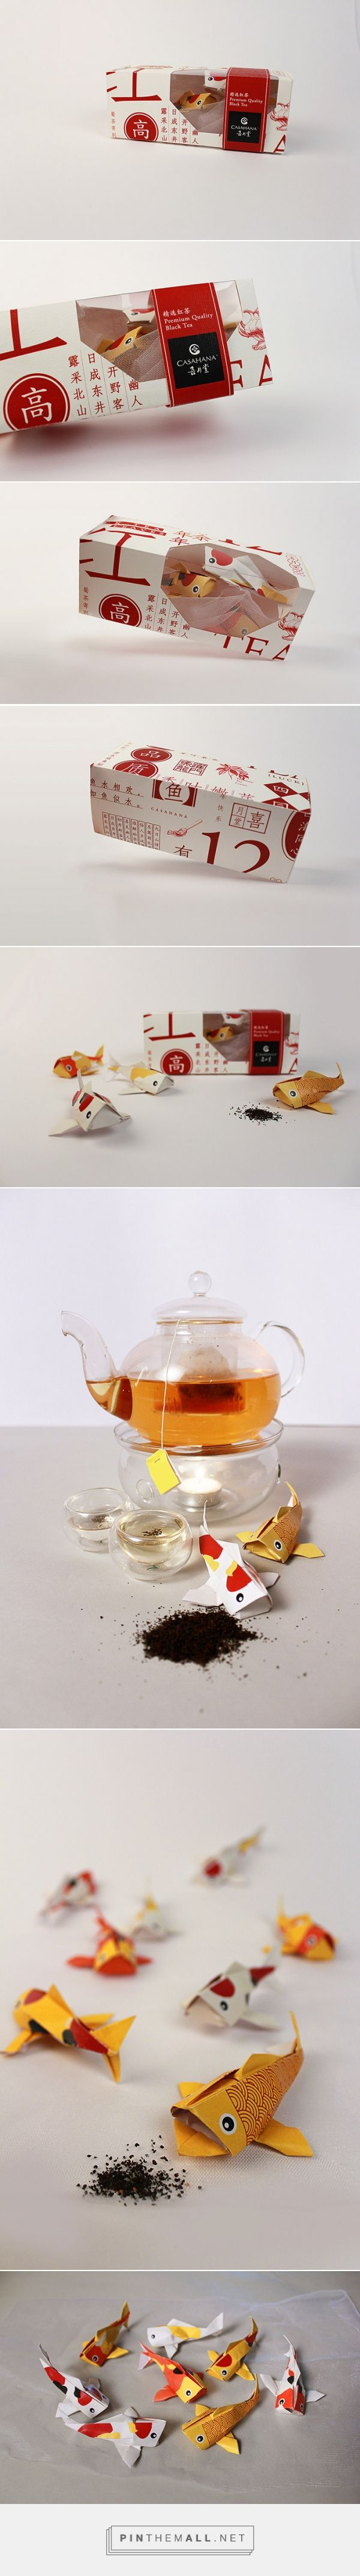 Casahana Black Tea curated by Packaging Diva PD. Chinese New Year origami tea packaging inspiration.